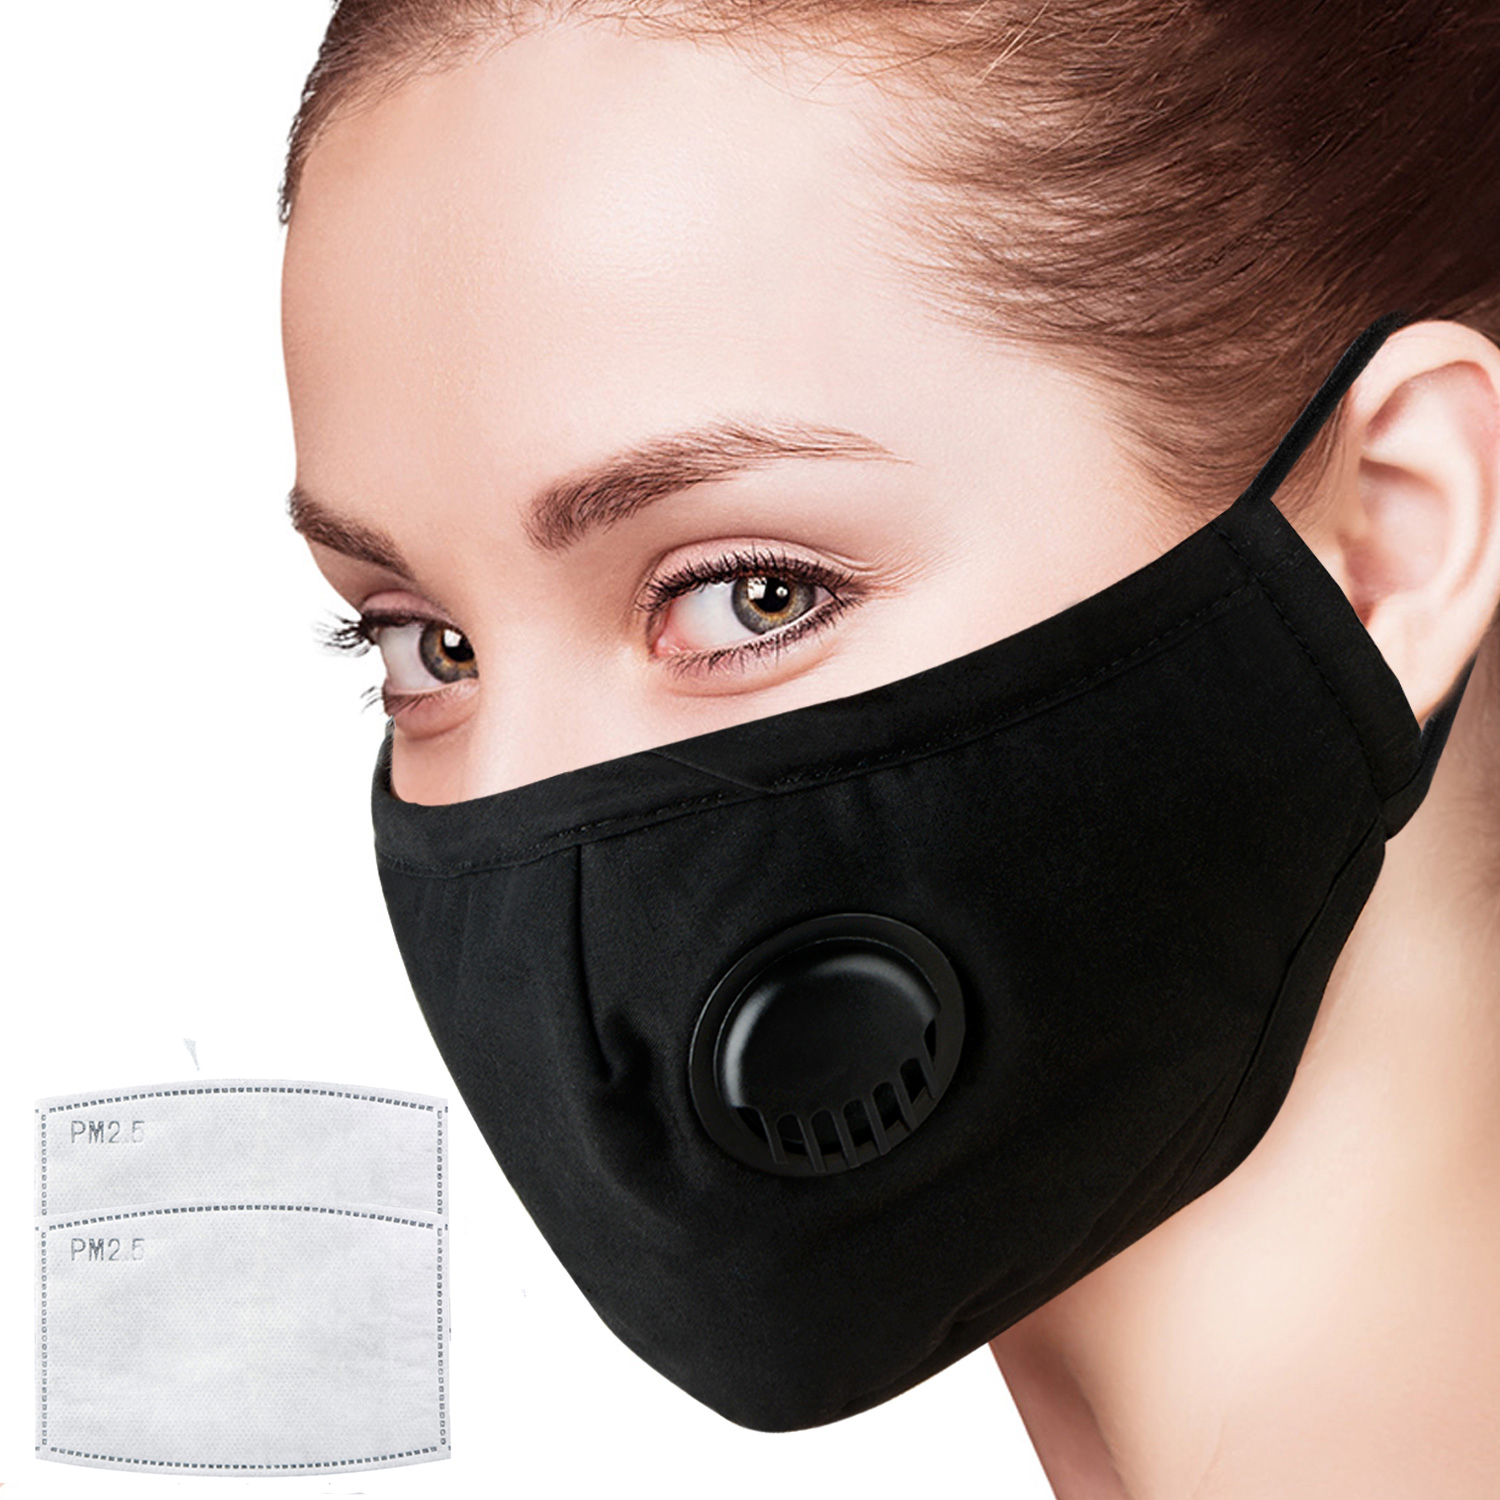 In Stock Pm2.5 Filter Washable Cotton Adult Mask Supporting Dust Filter Kn95 Pro Anti Industrial Construction Dust Pollen Haze